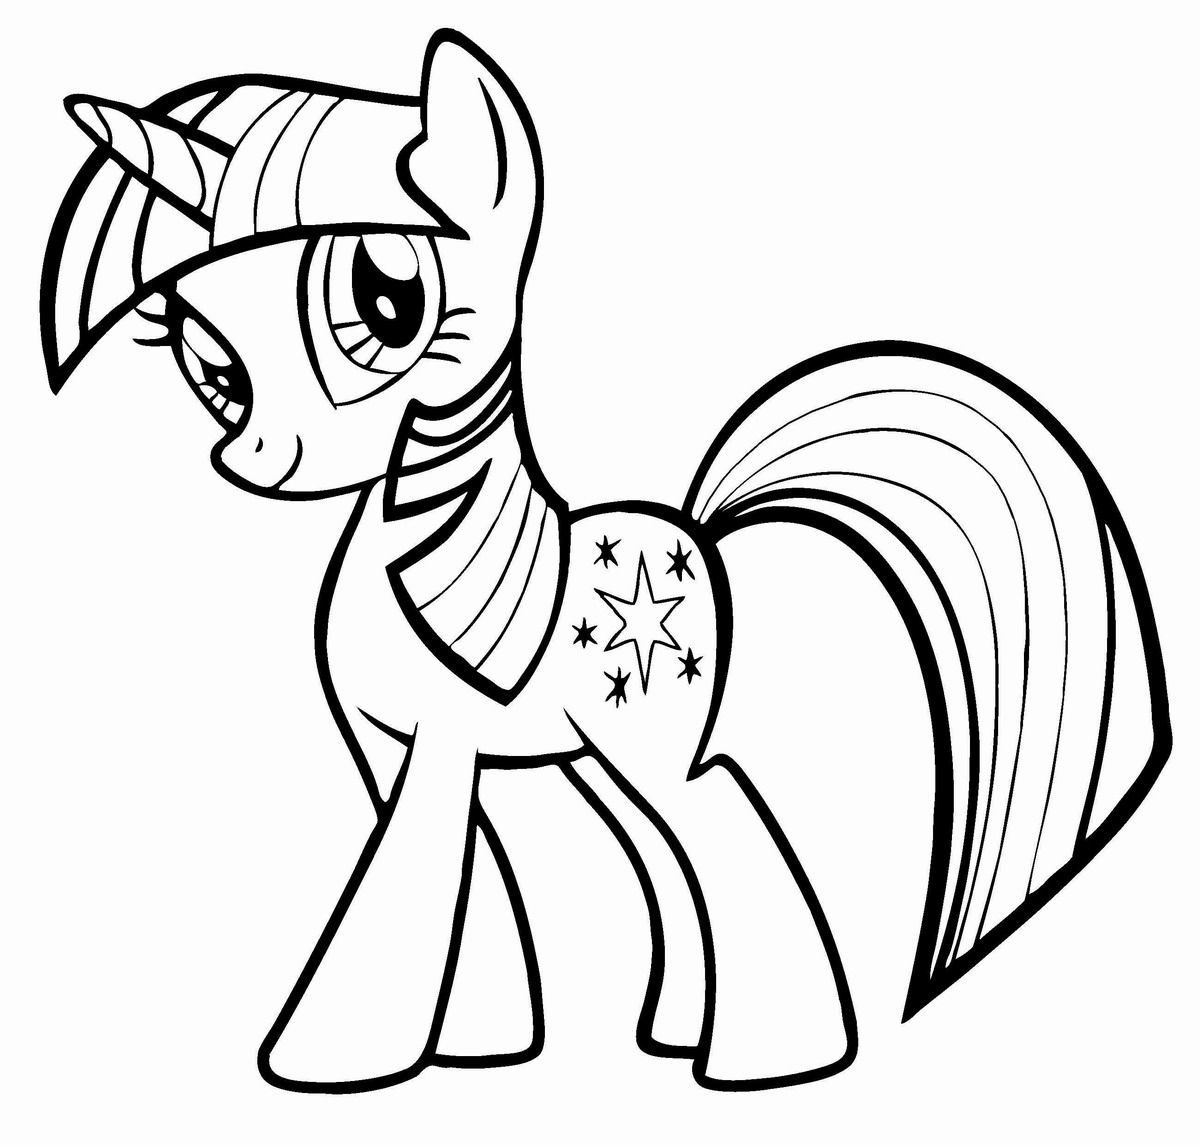 pony to color free printable my little pony coloring pages for kids color pony to